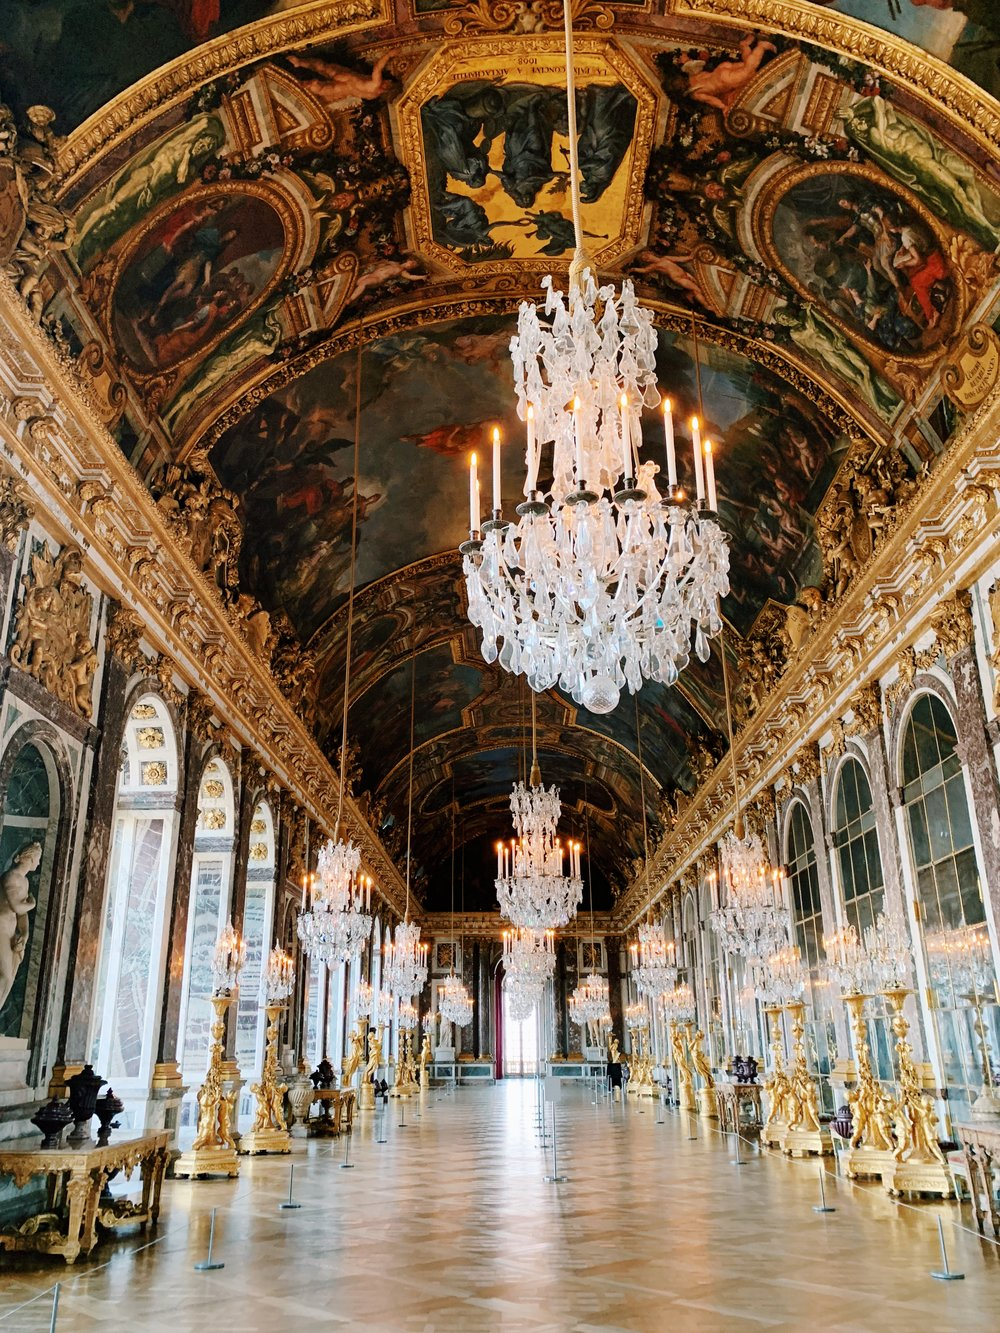 The Hall of Mirrors, completely empty!